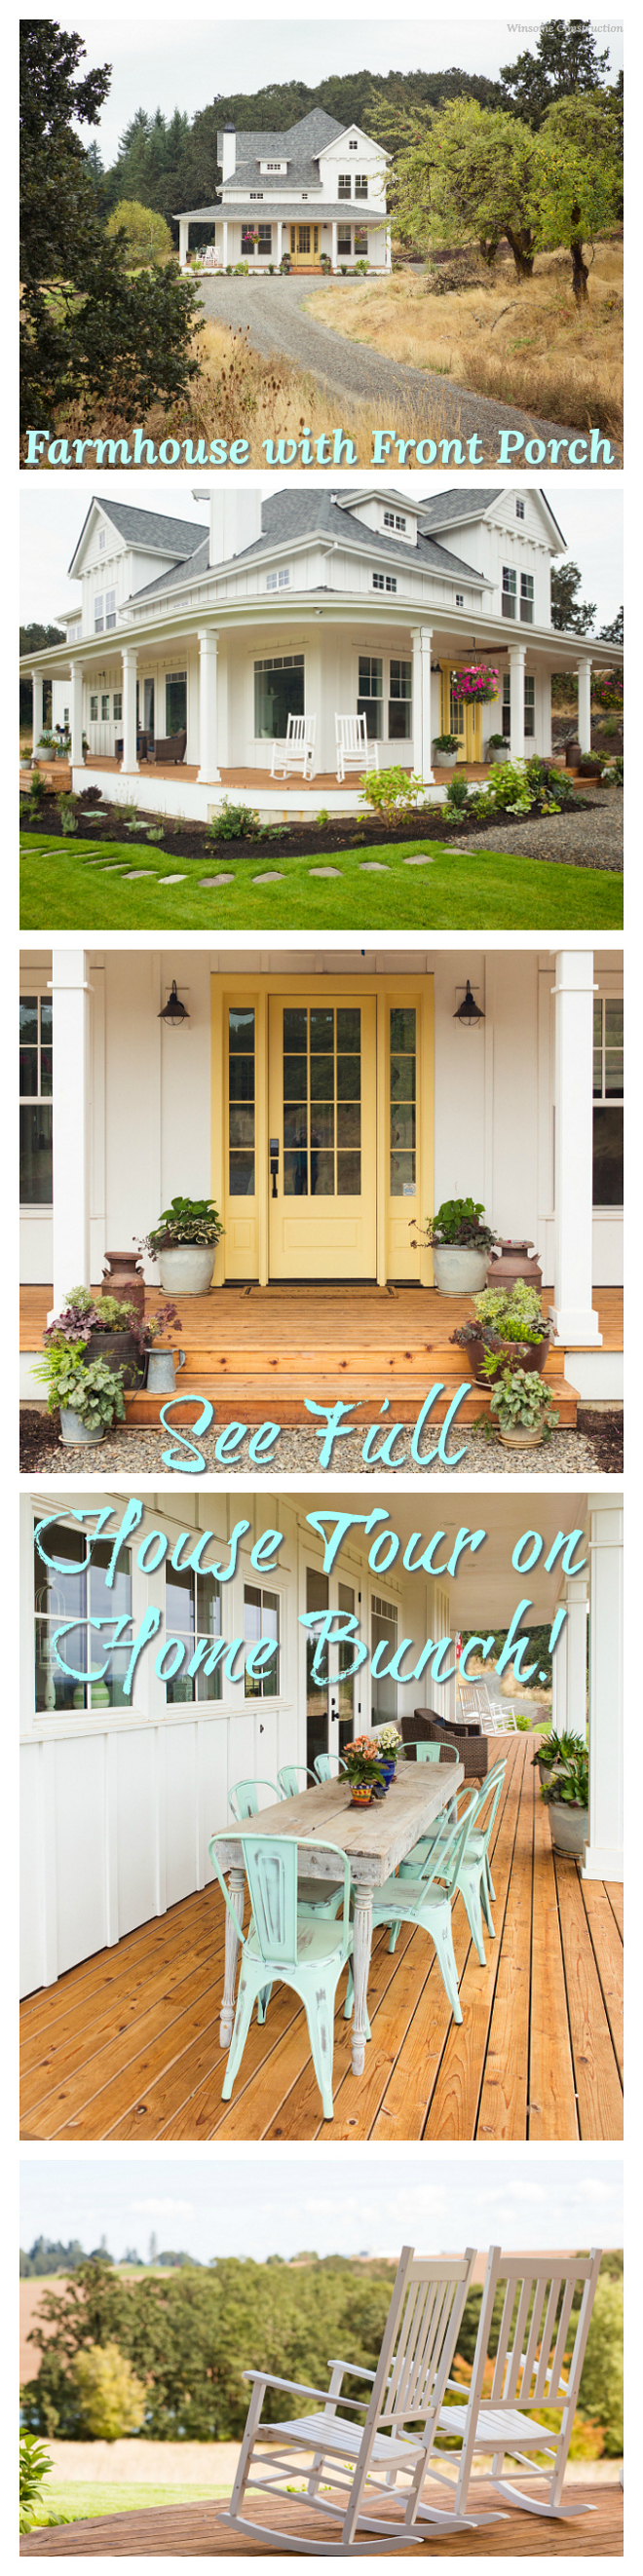 Farmhouse with Front Porch Farmhouse with Front Porch Farmhouse with Front Porch Farmhouse with Front Porch #FarmhouseFrontPorch